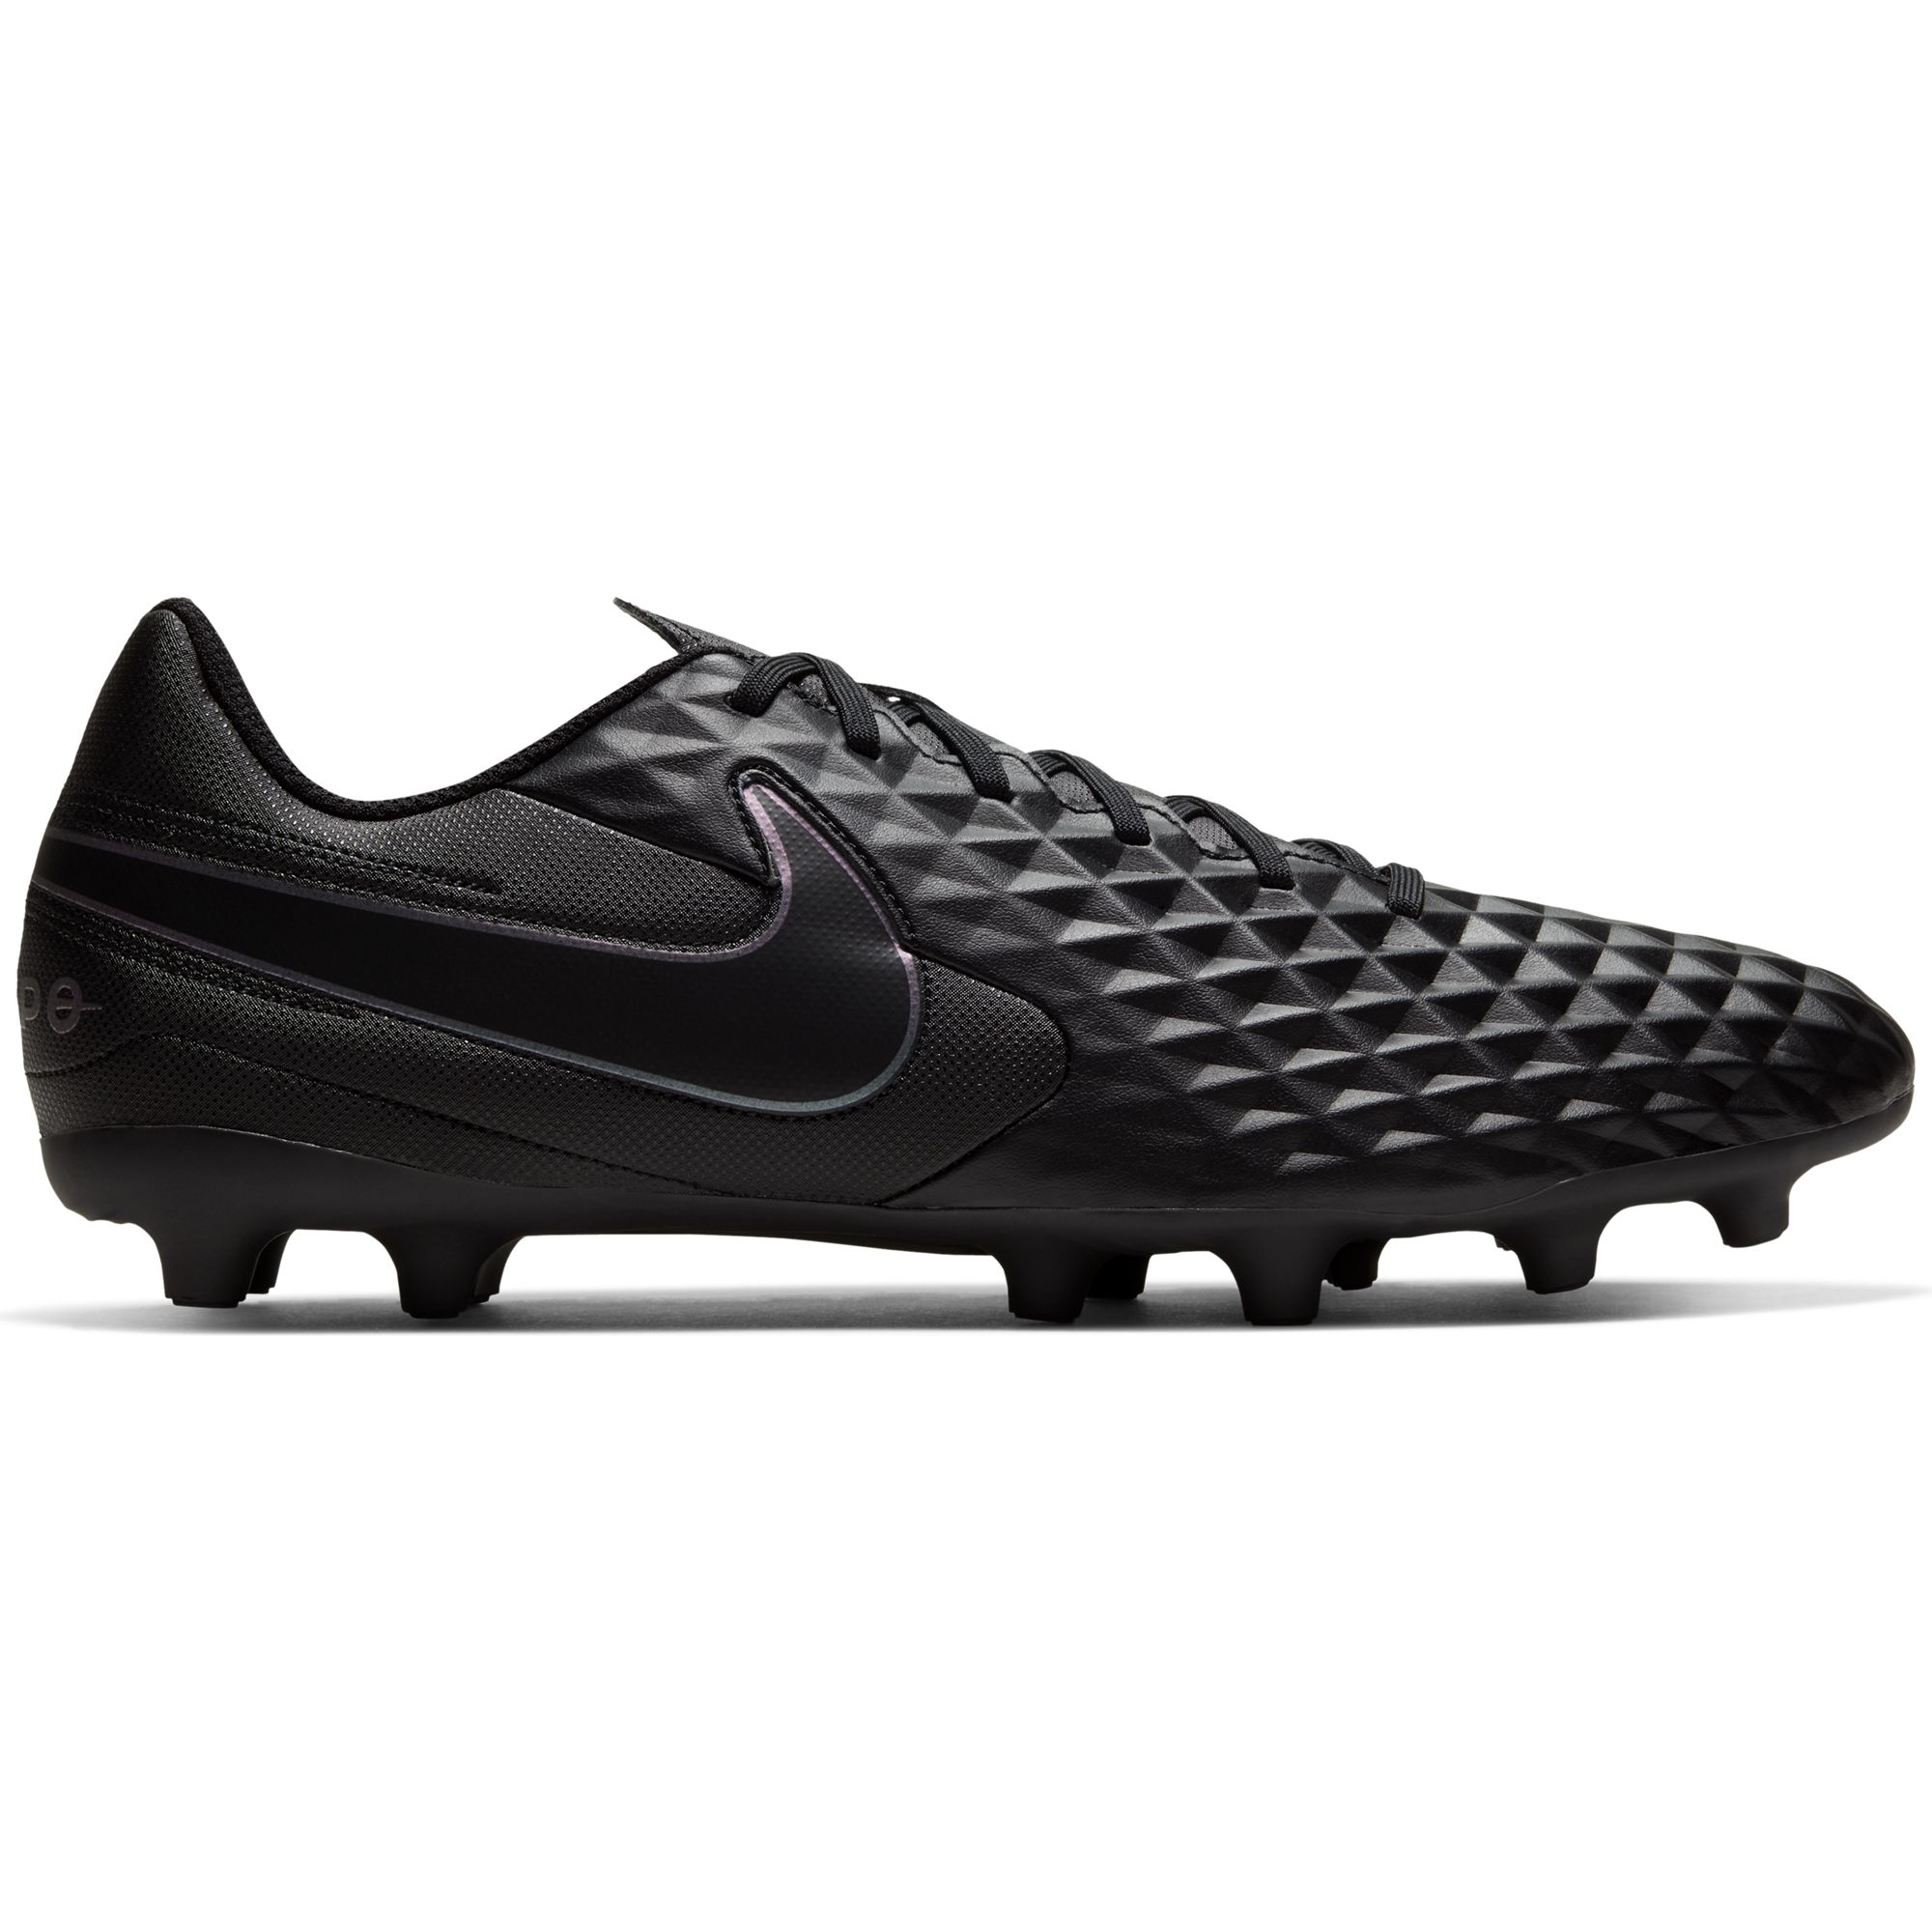 Men's Tiempo Legend 8 Club FG Soccer Cleats, , large